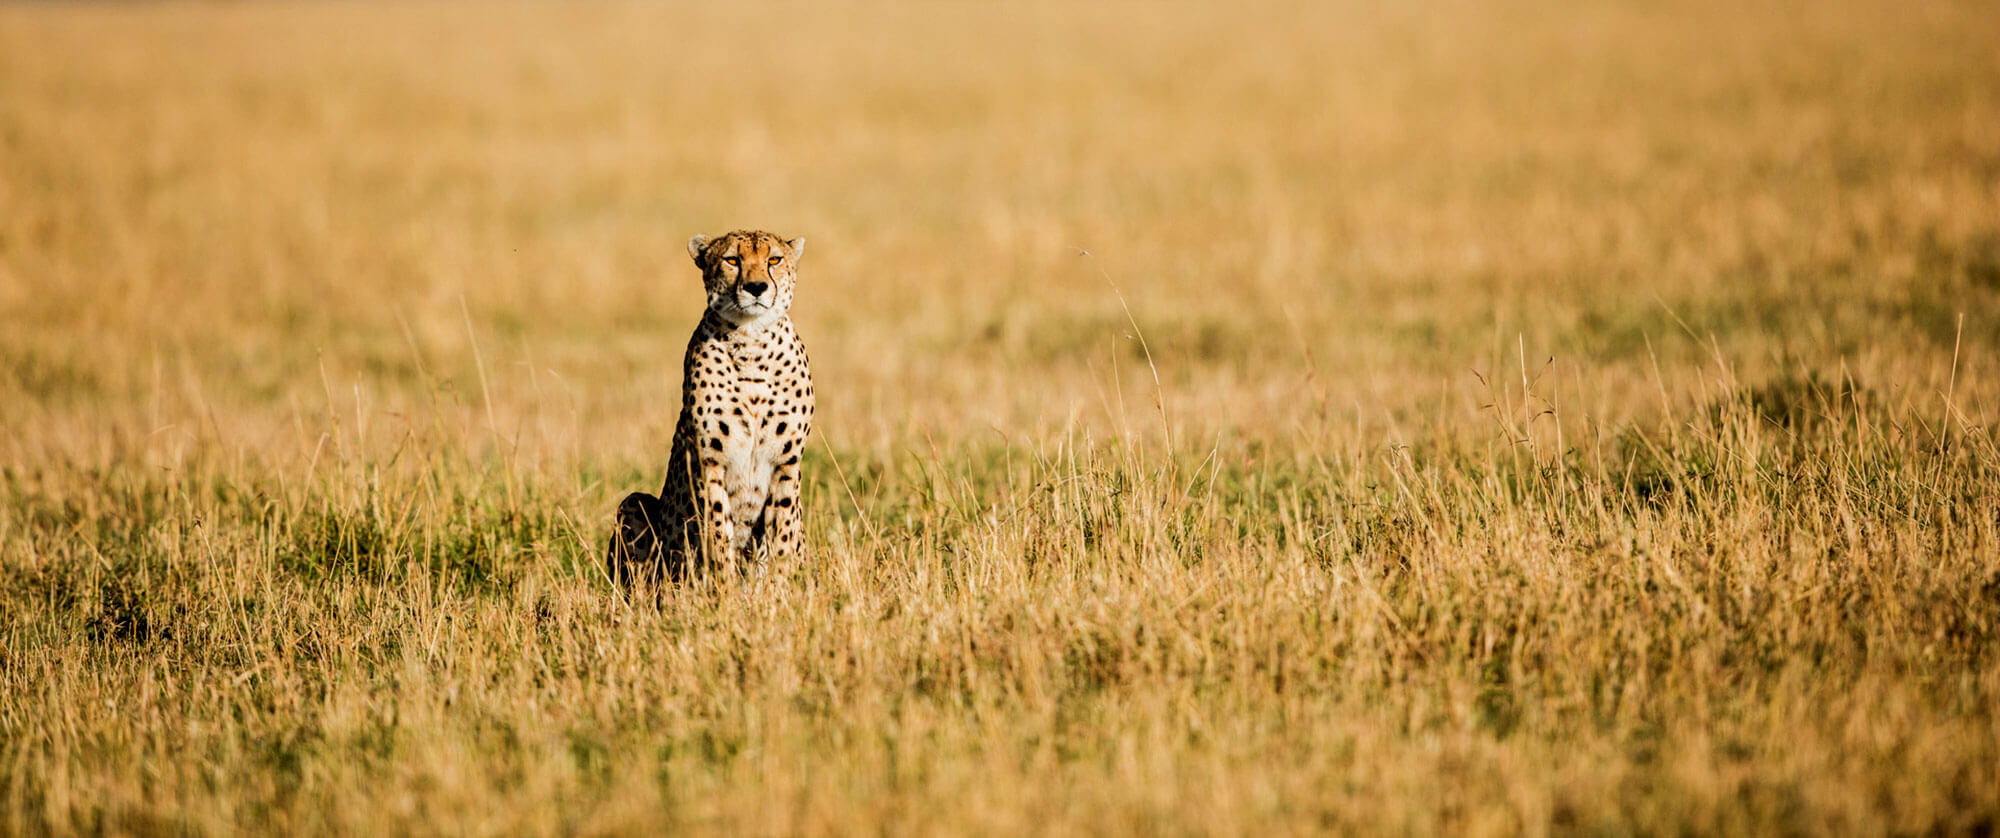 Cheetah in the Serengeti - Legendary Serengeti Mobile Camp Safari - Great Migration Safari Packages